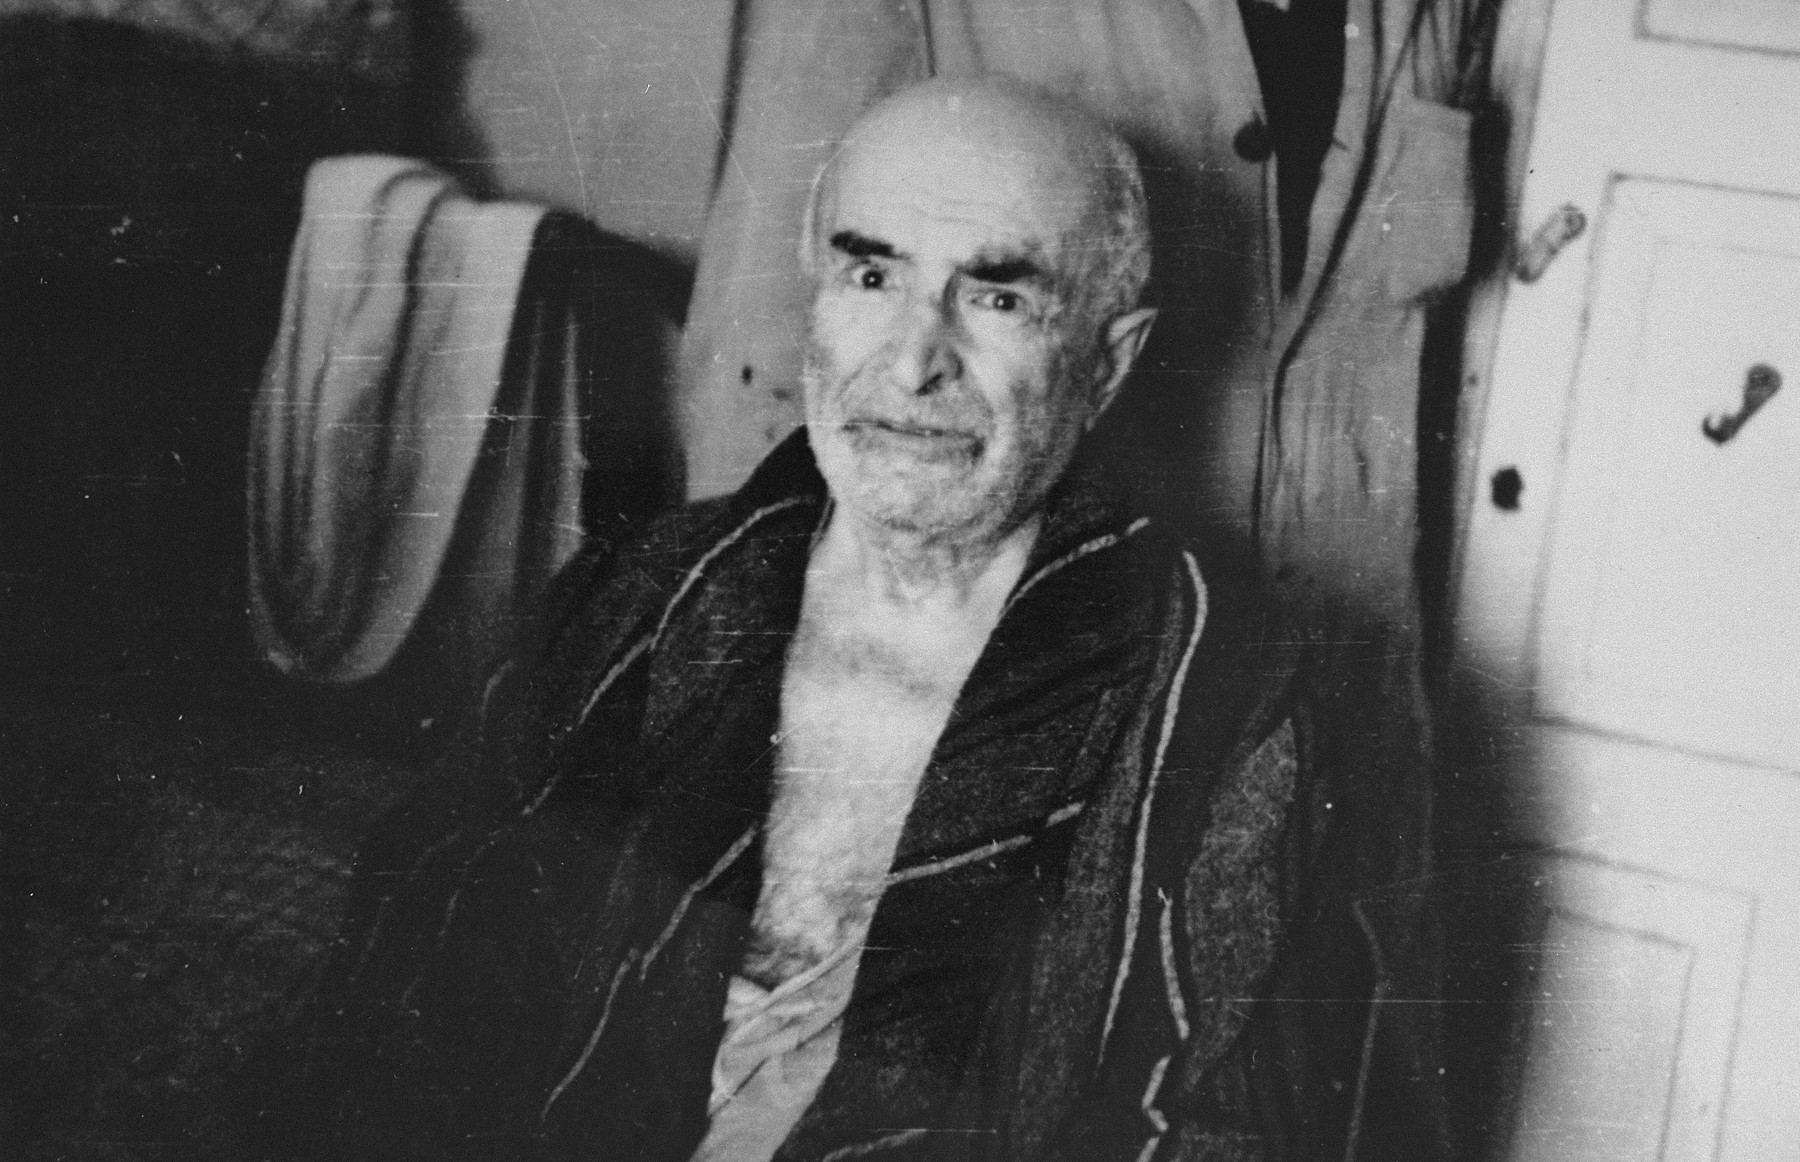 Portrait of Professor Simon Bieliatzkin in his room in the Kovno ghetto.  Before the war Bieliatzkin was a jurist and an expert in civil law at the University of Lithuania.  During the war he served as chairman of the Jewish court in the ghetto. By 1943 Bieliatzkin was suffering from severe depression and was being treated in a clandestine psychiatric unit.